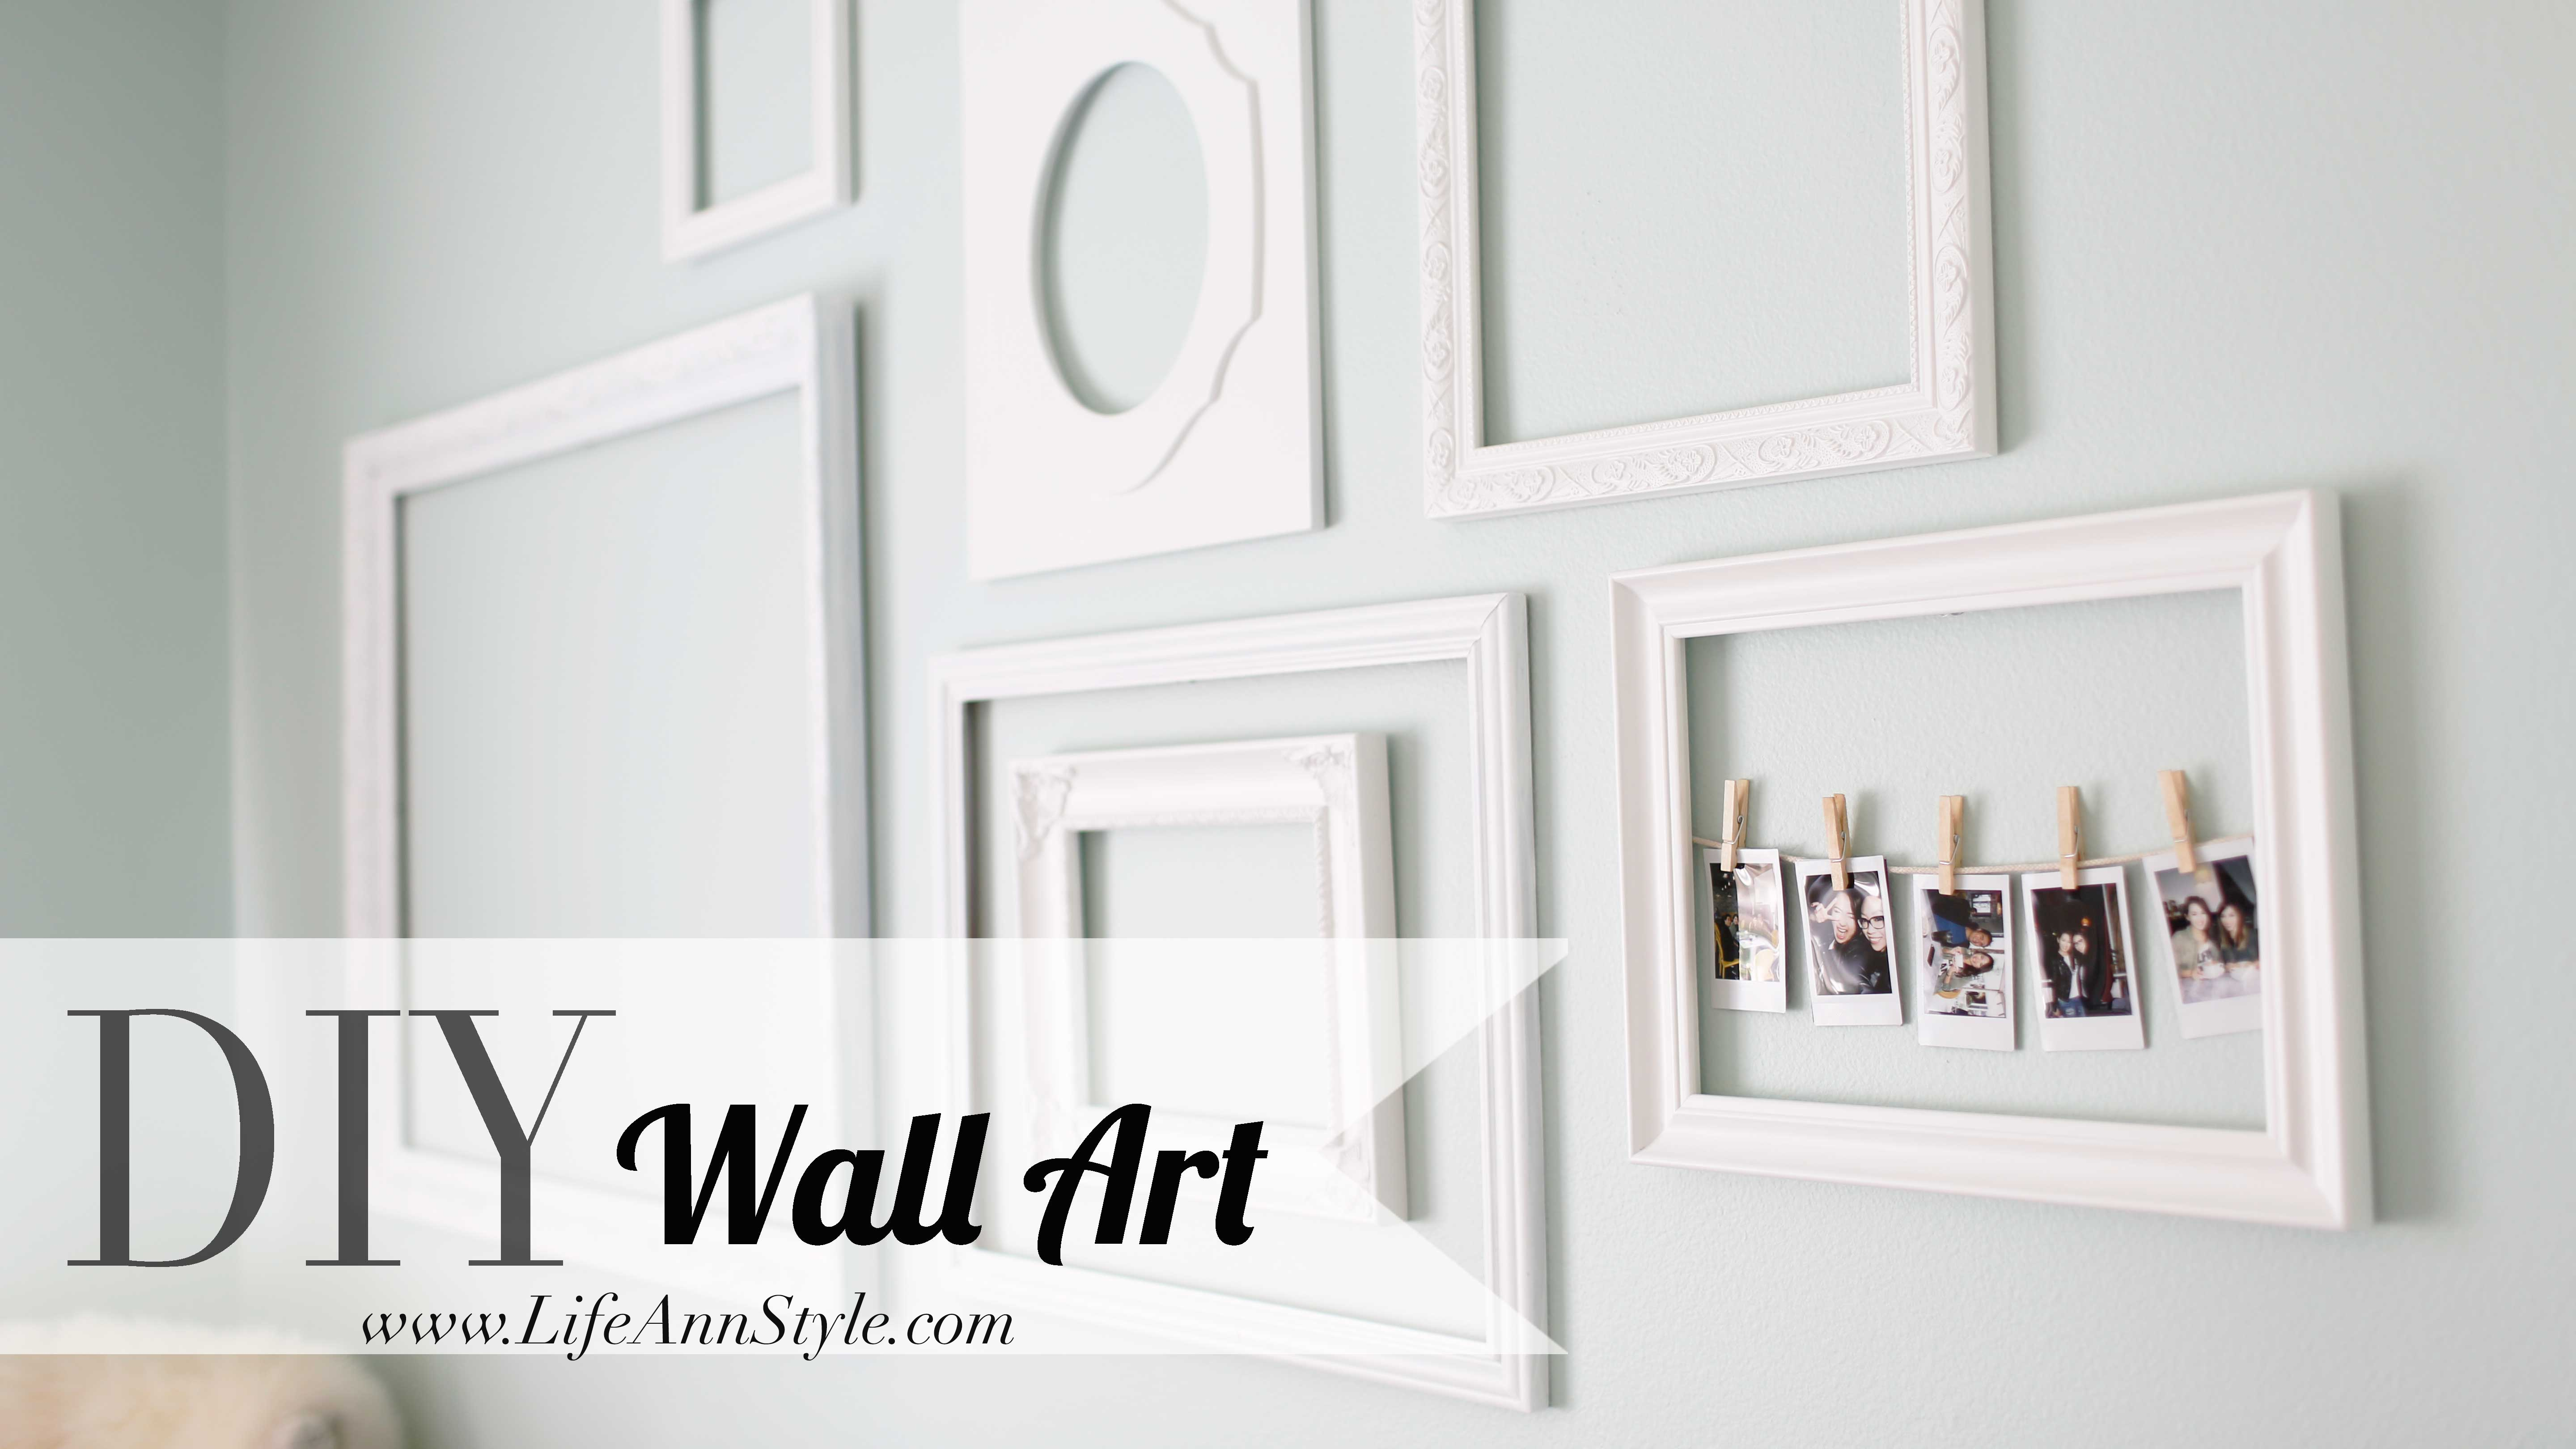 Make A Statement With Empty Picture Frames As Wall Art – Ann Le Style With Most Up To Date Wall Art Frames (View 8 of 20)